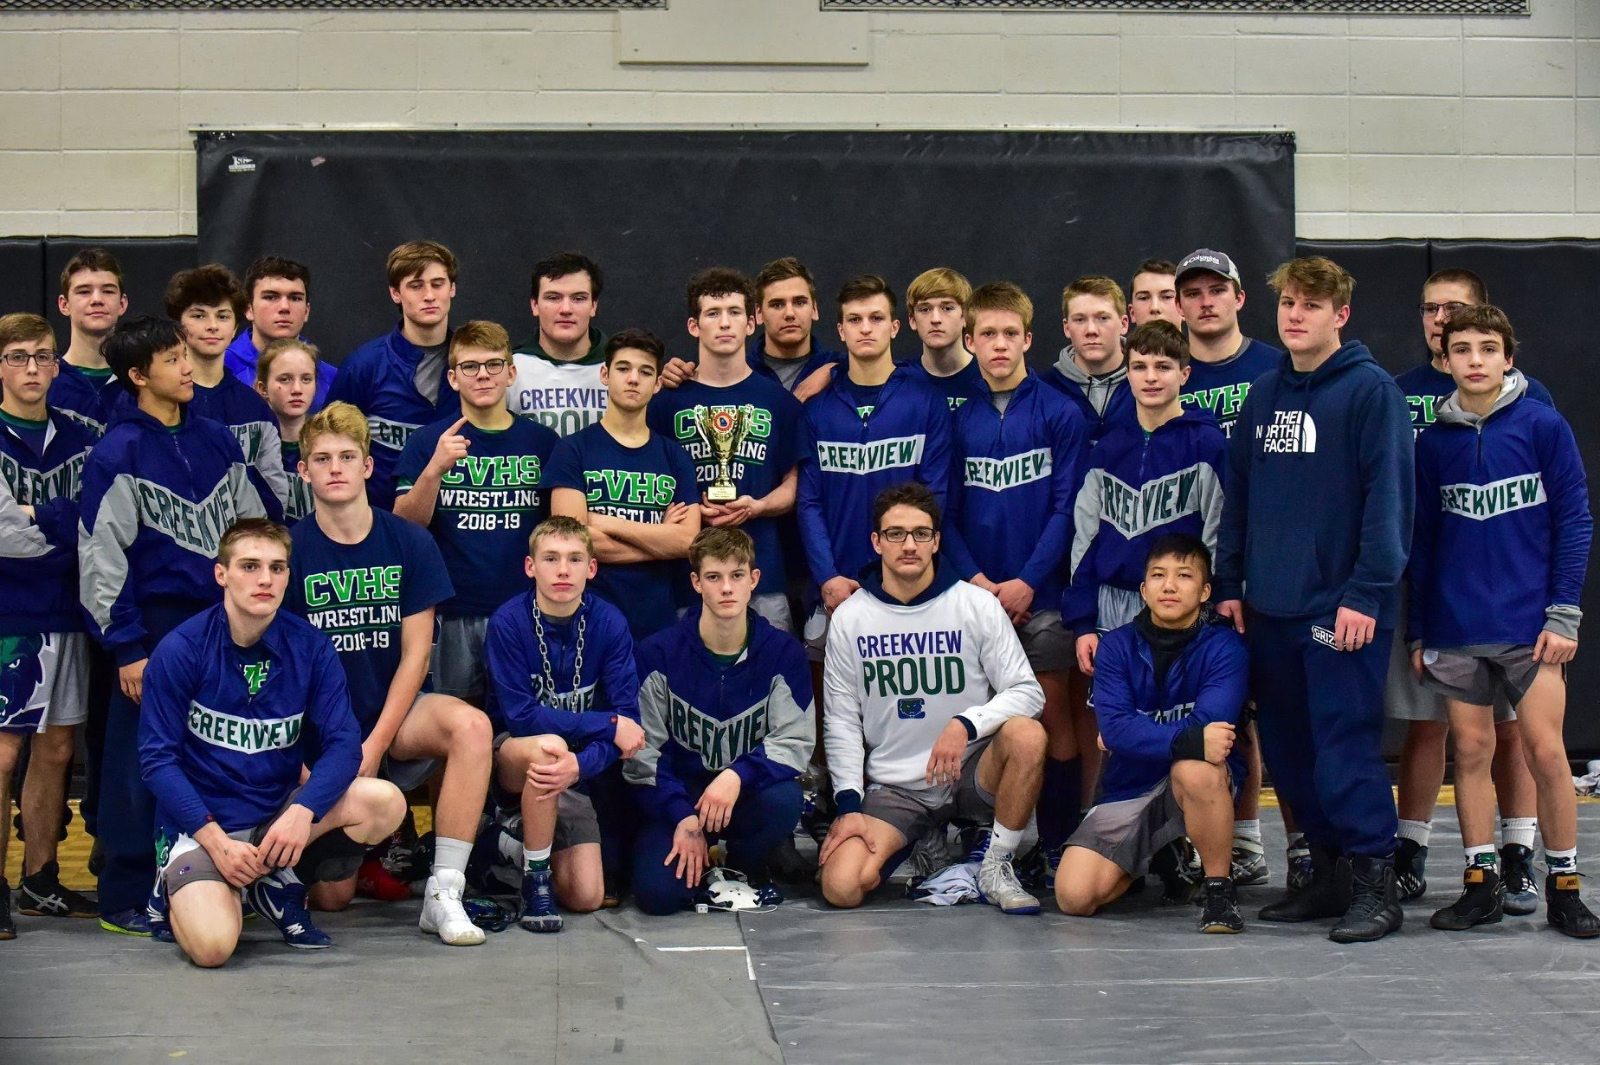 Grizzlies Win Region Duals, Heading to State!!!